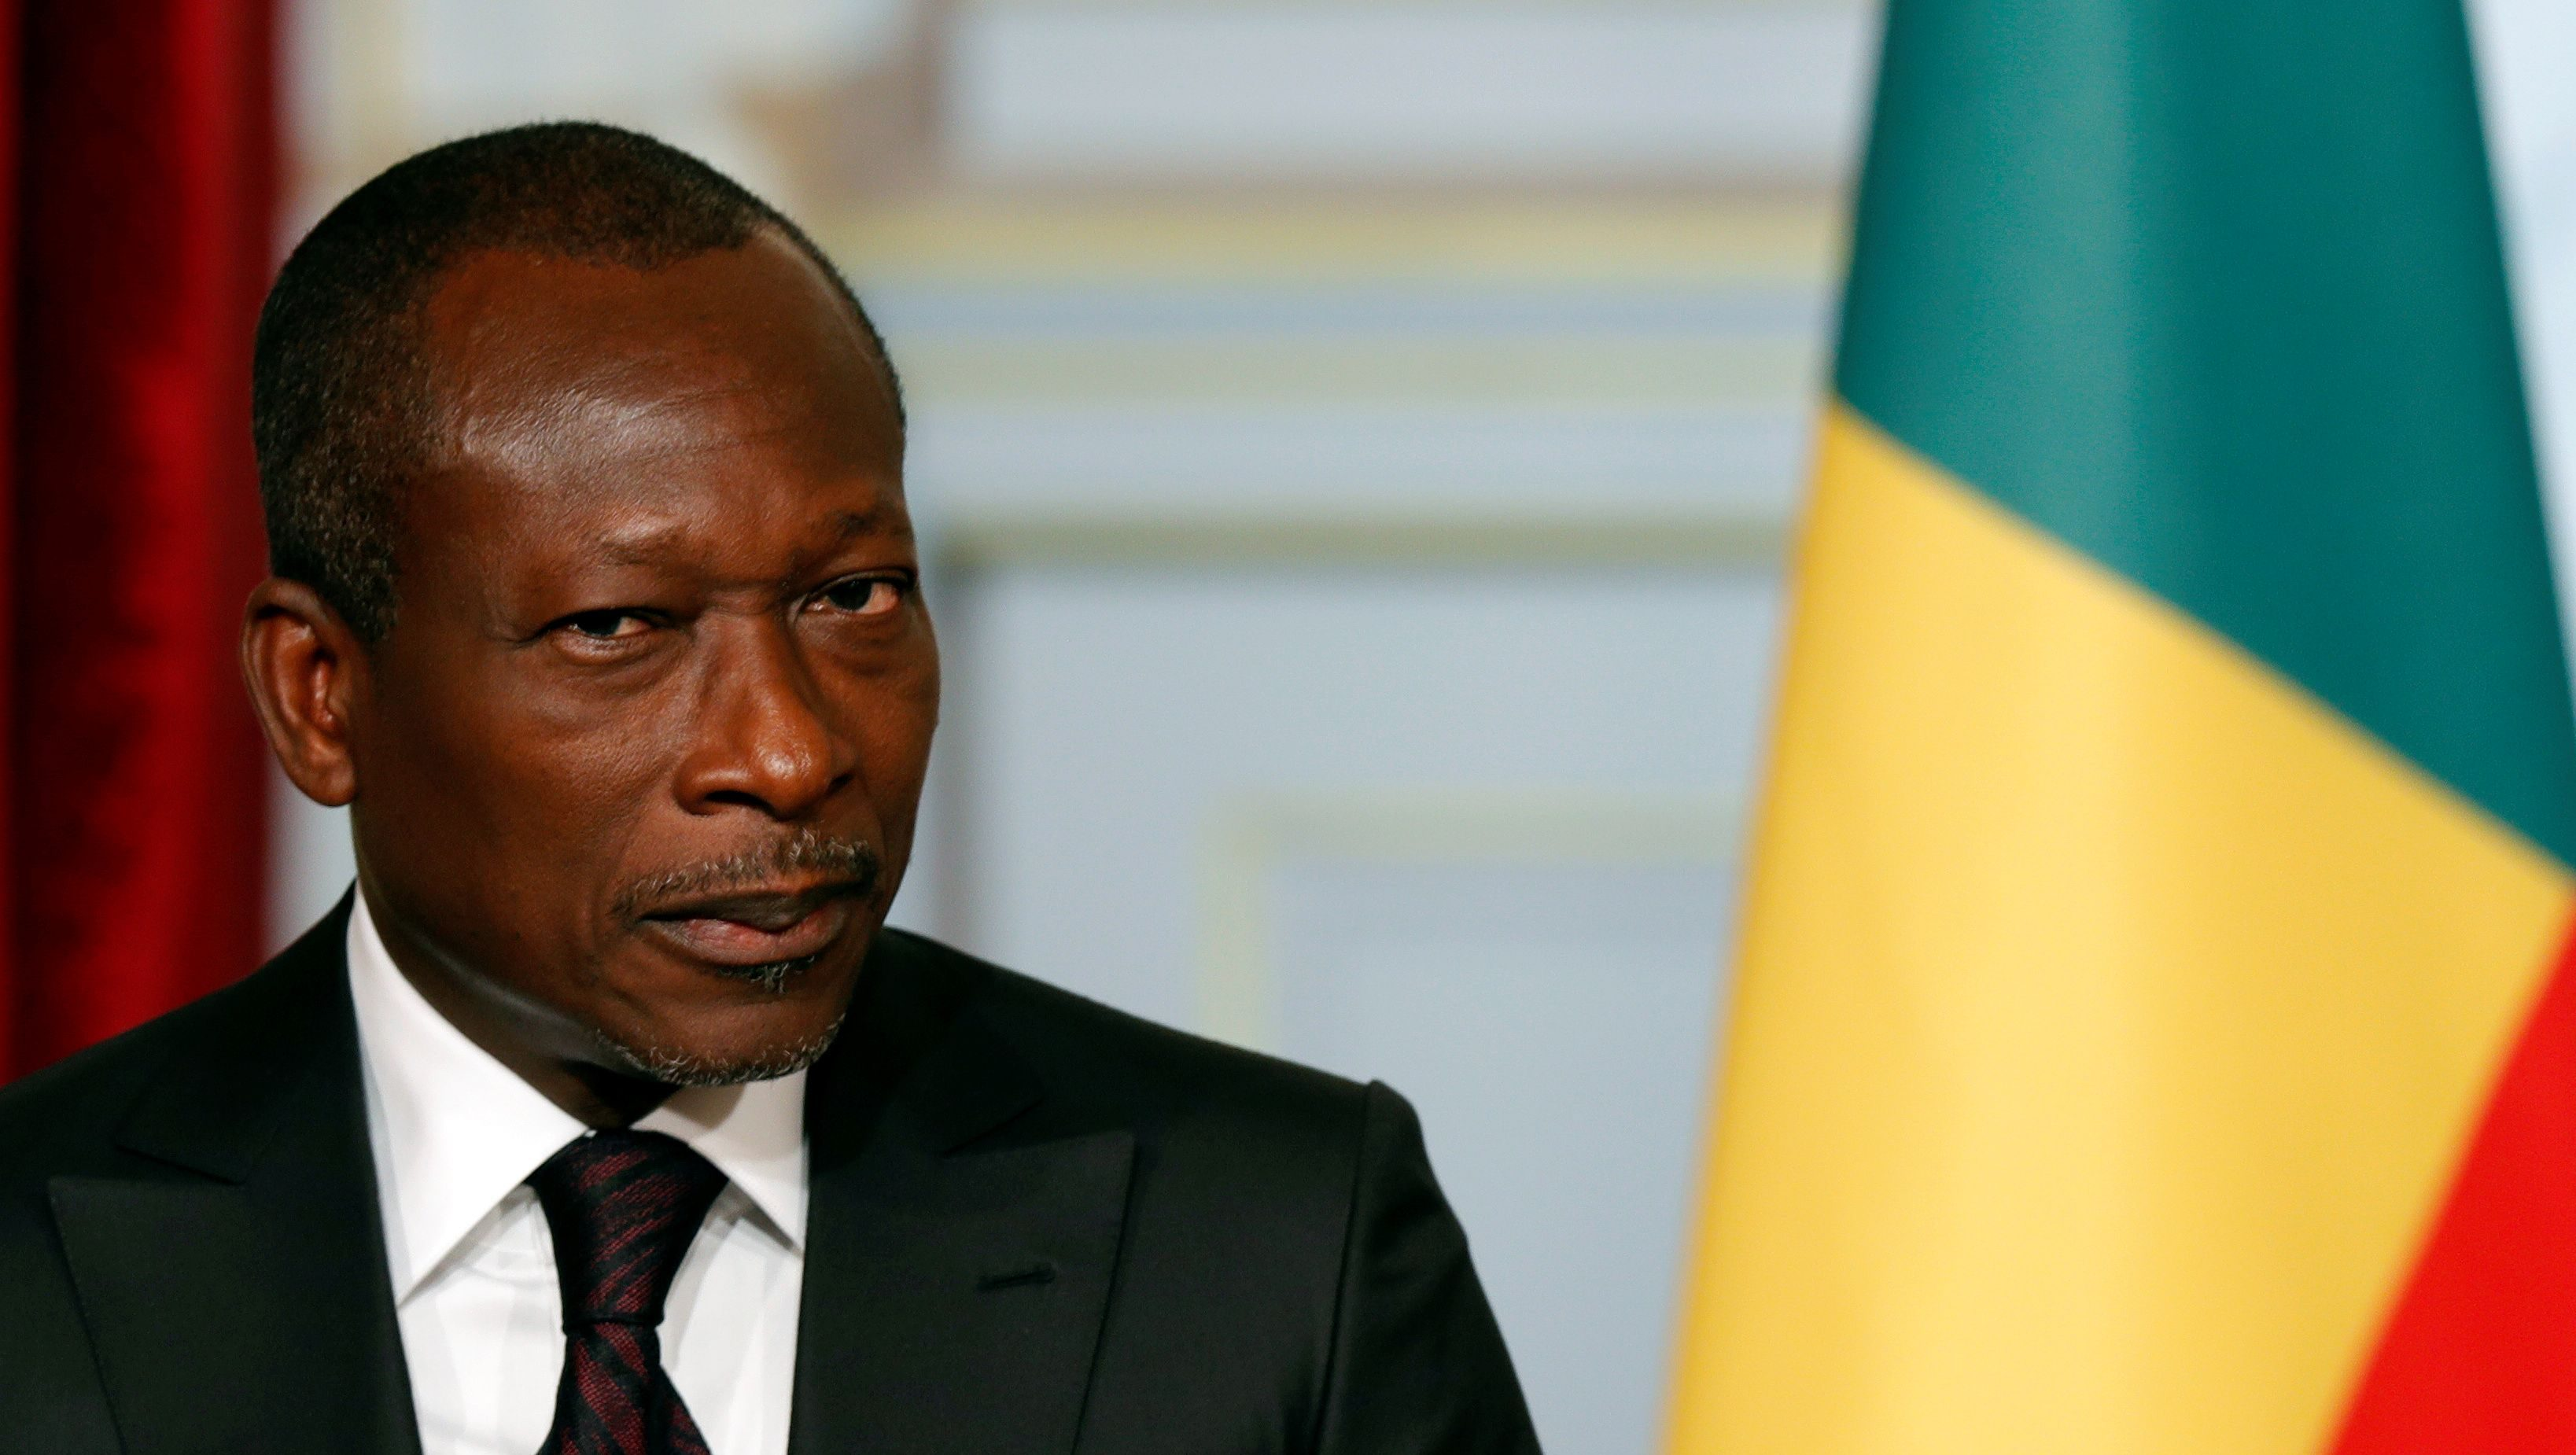 Benin's President Patrice Talon attends a joint declaration with French President at the Elysee Palace in Paris, France, April 26, 2016.